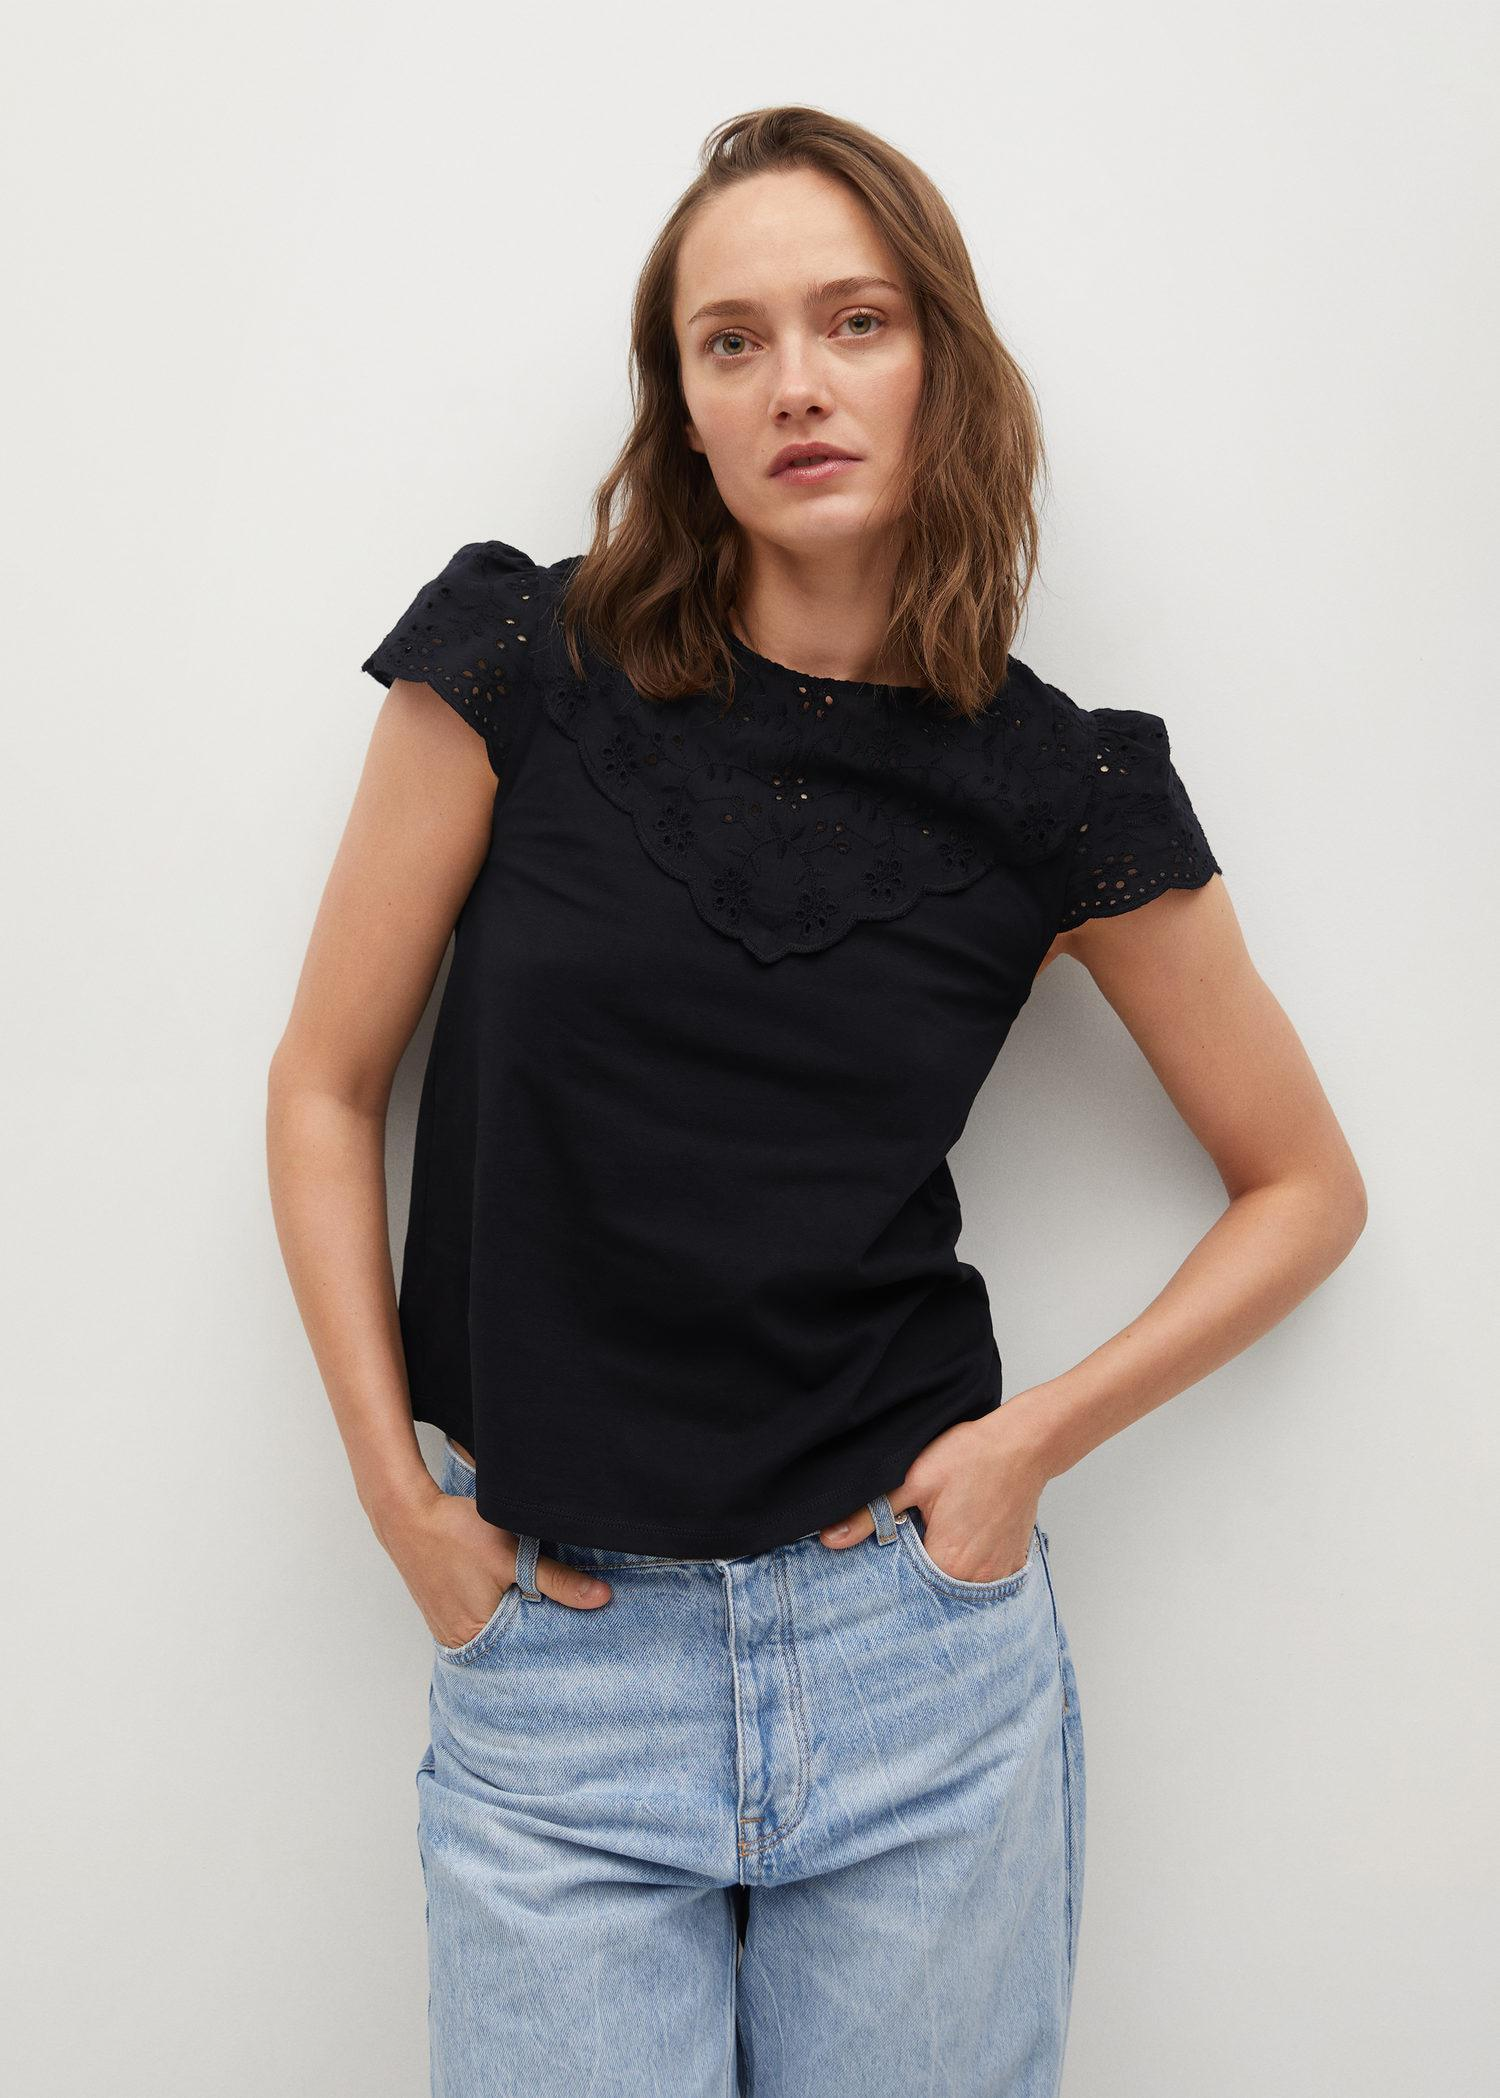 Cotton T-shirt broderie anglaise